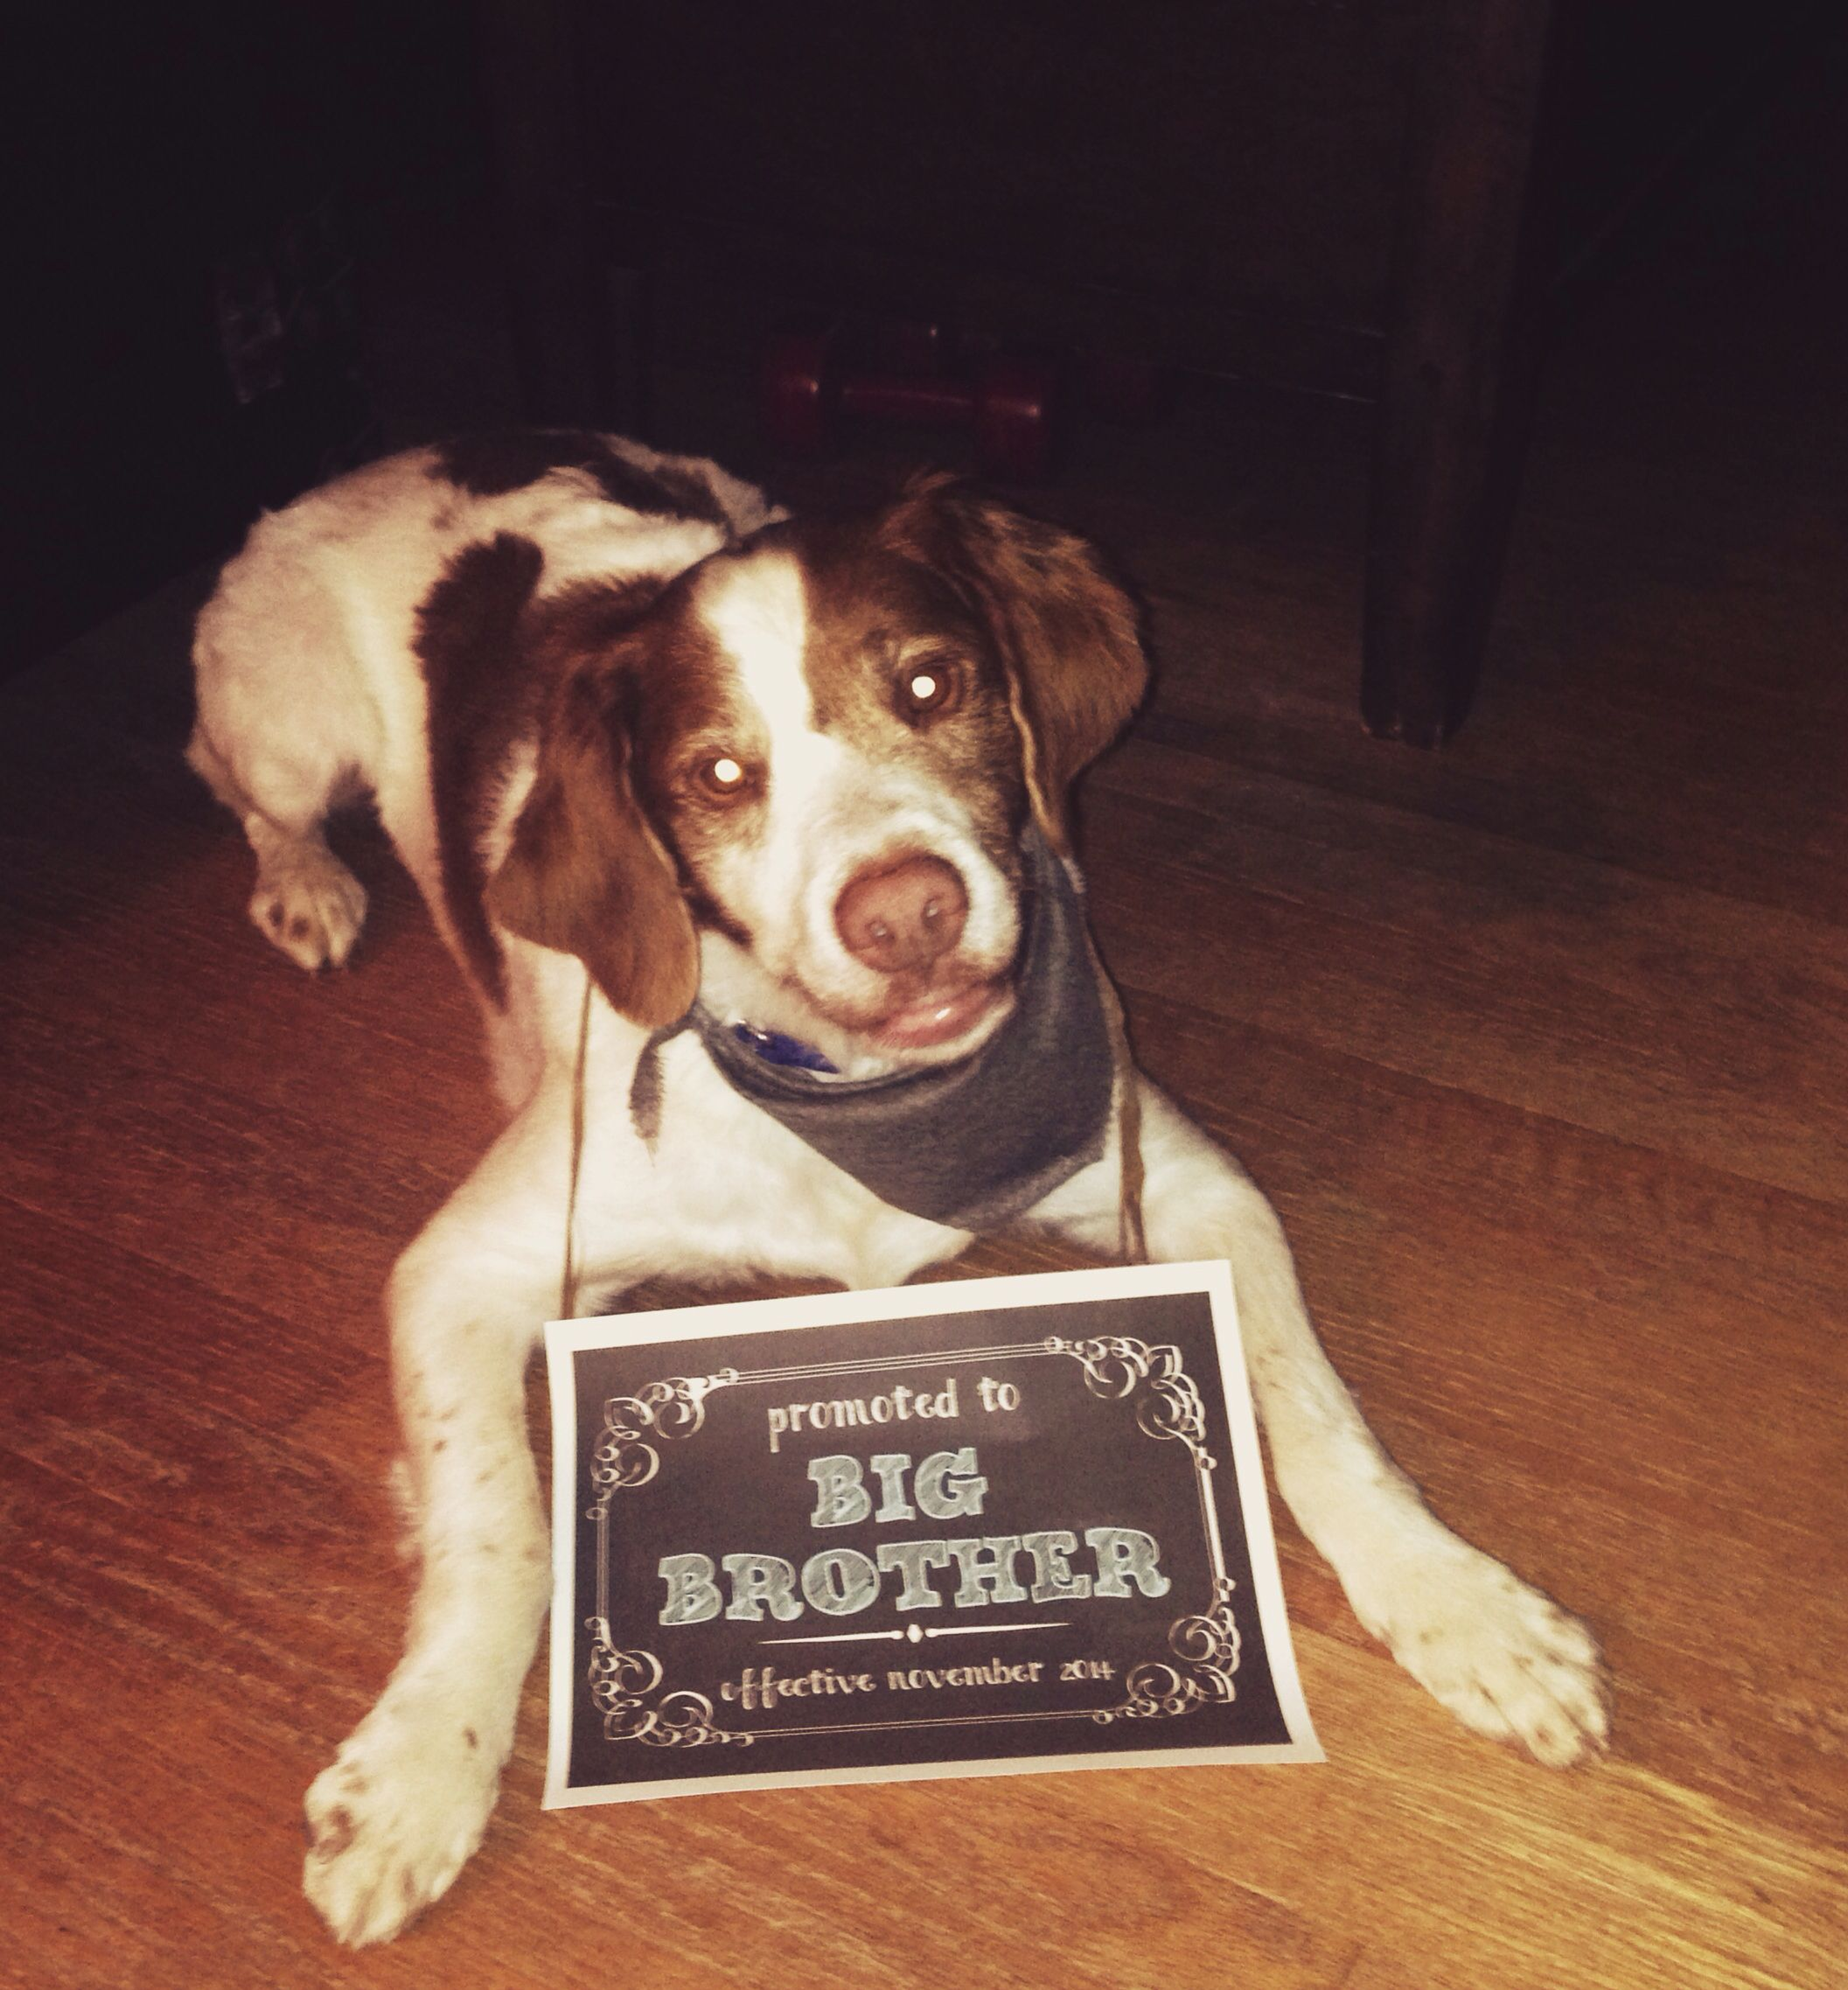 Big brother brittany spaniel